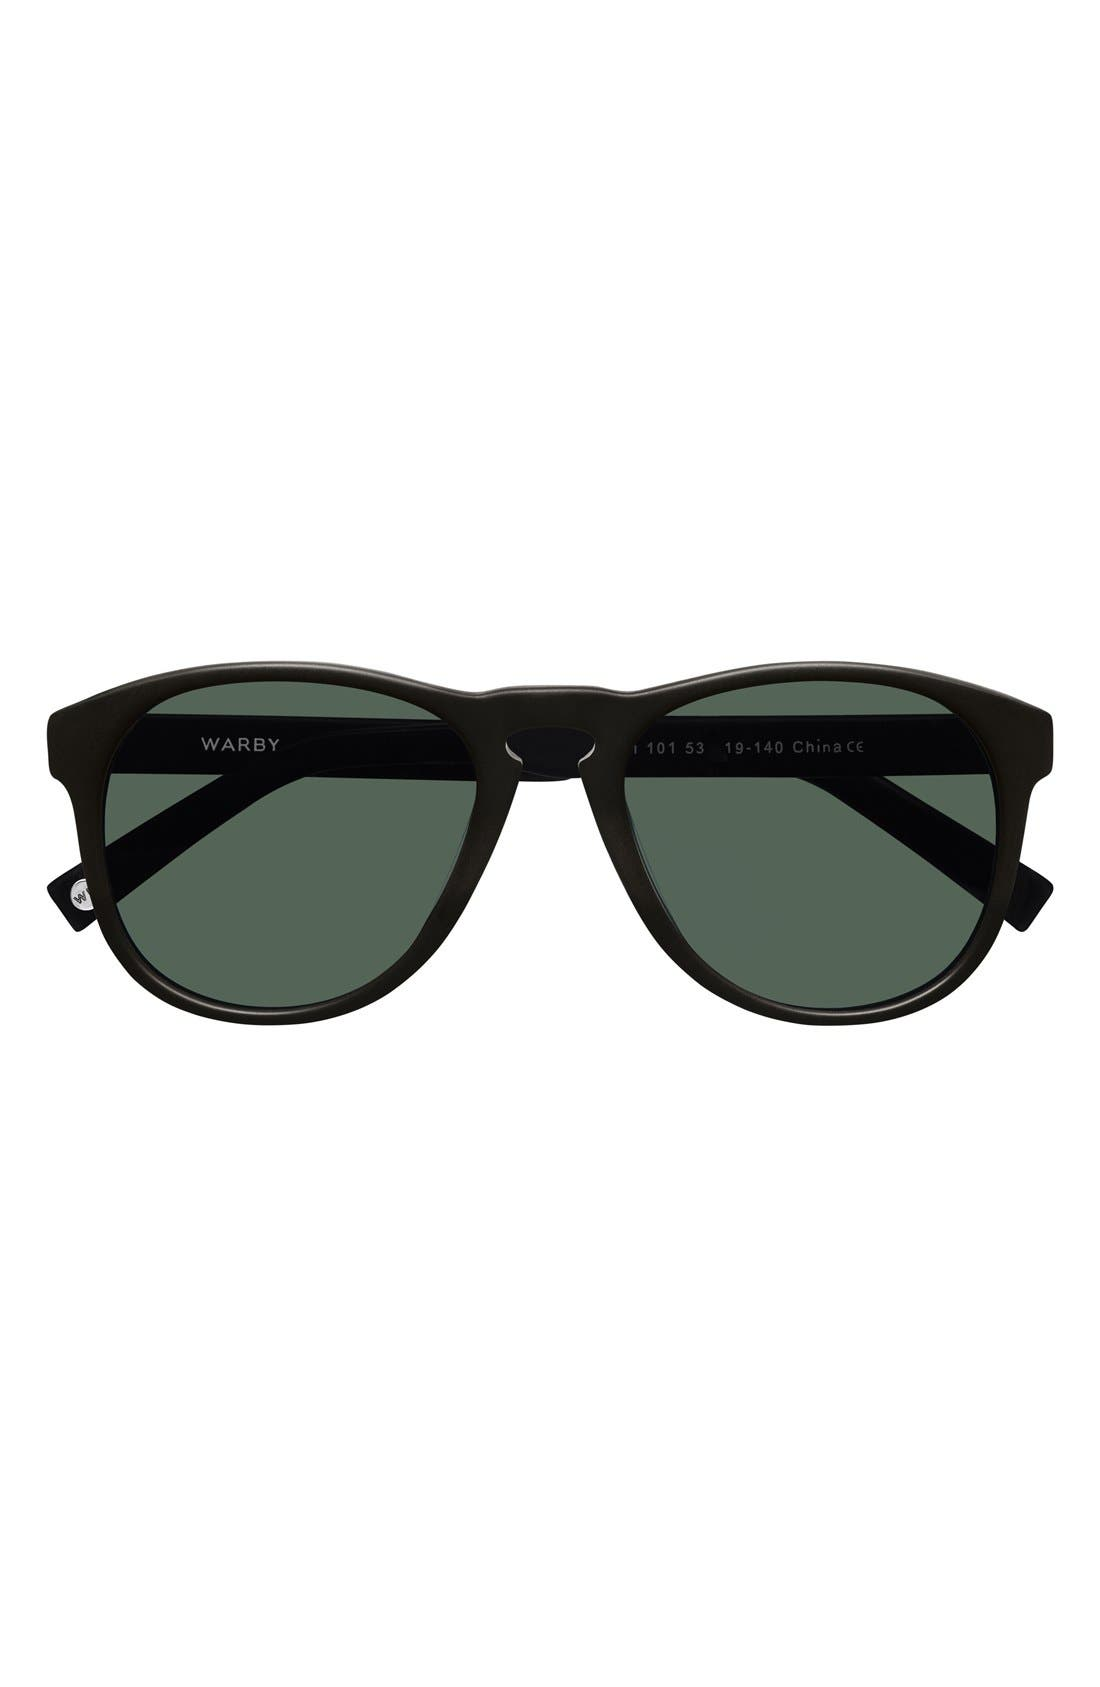 WARBY PARKER,                             'Griffin' 53mm Polarized Sunglasses,                             Alternate thumbnail 4, color,                             001